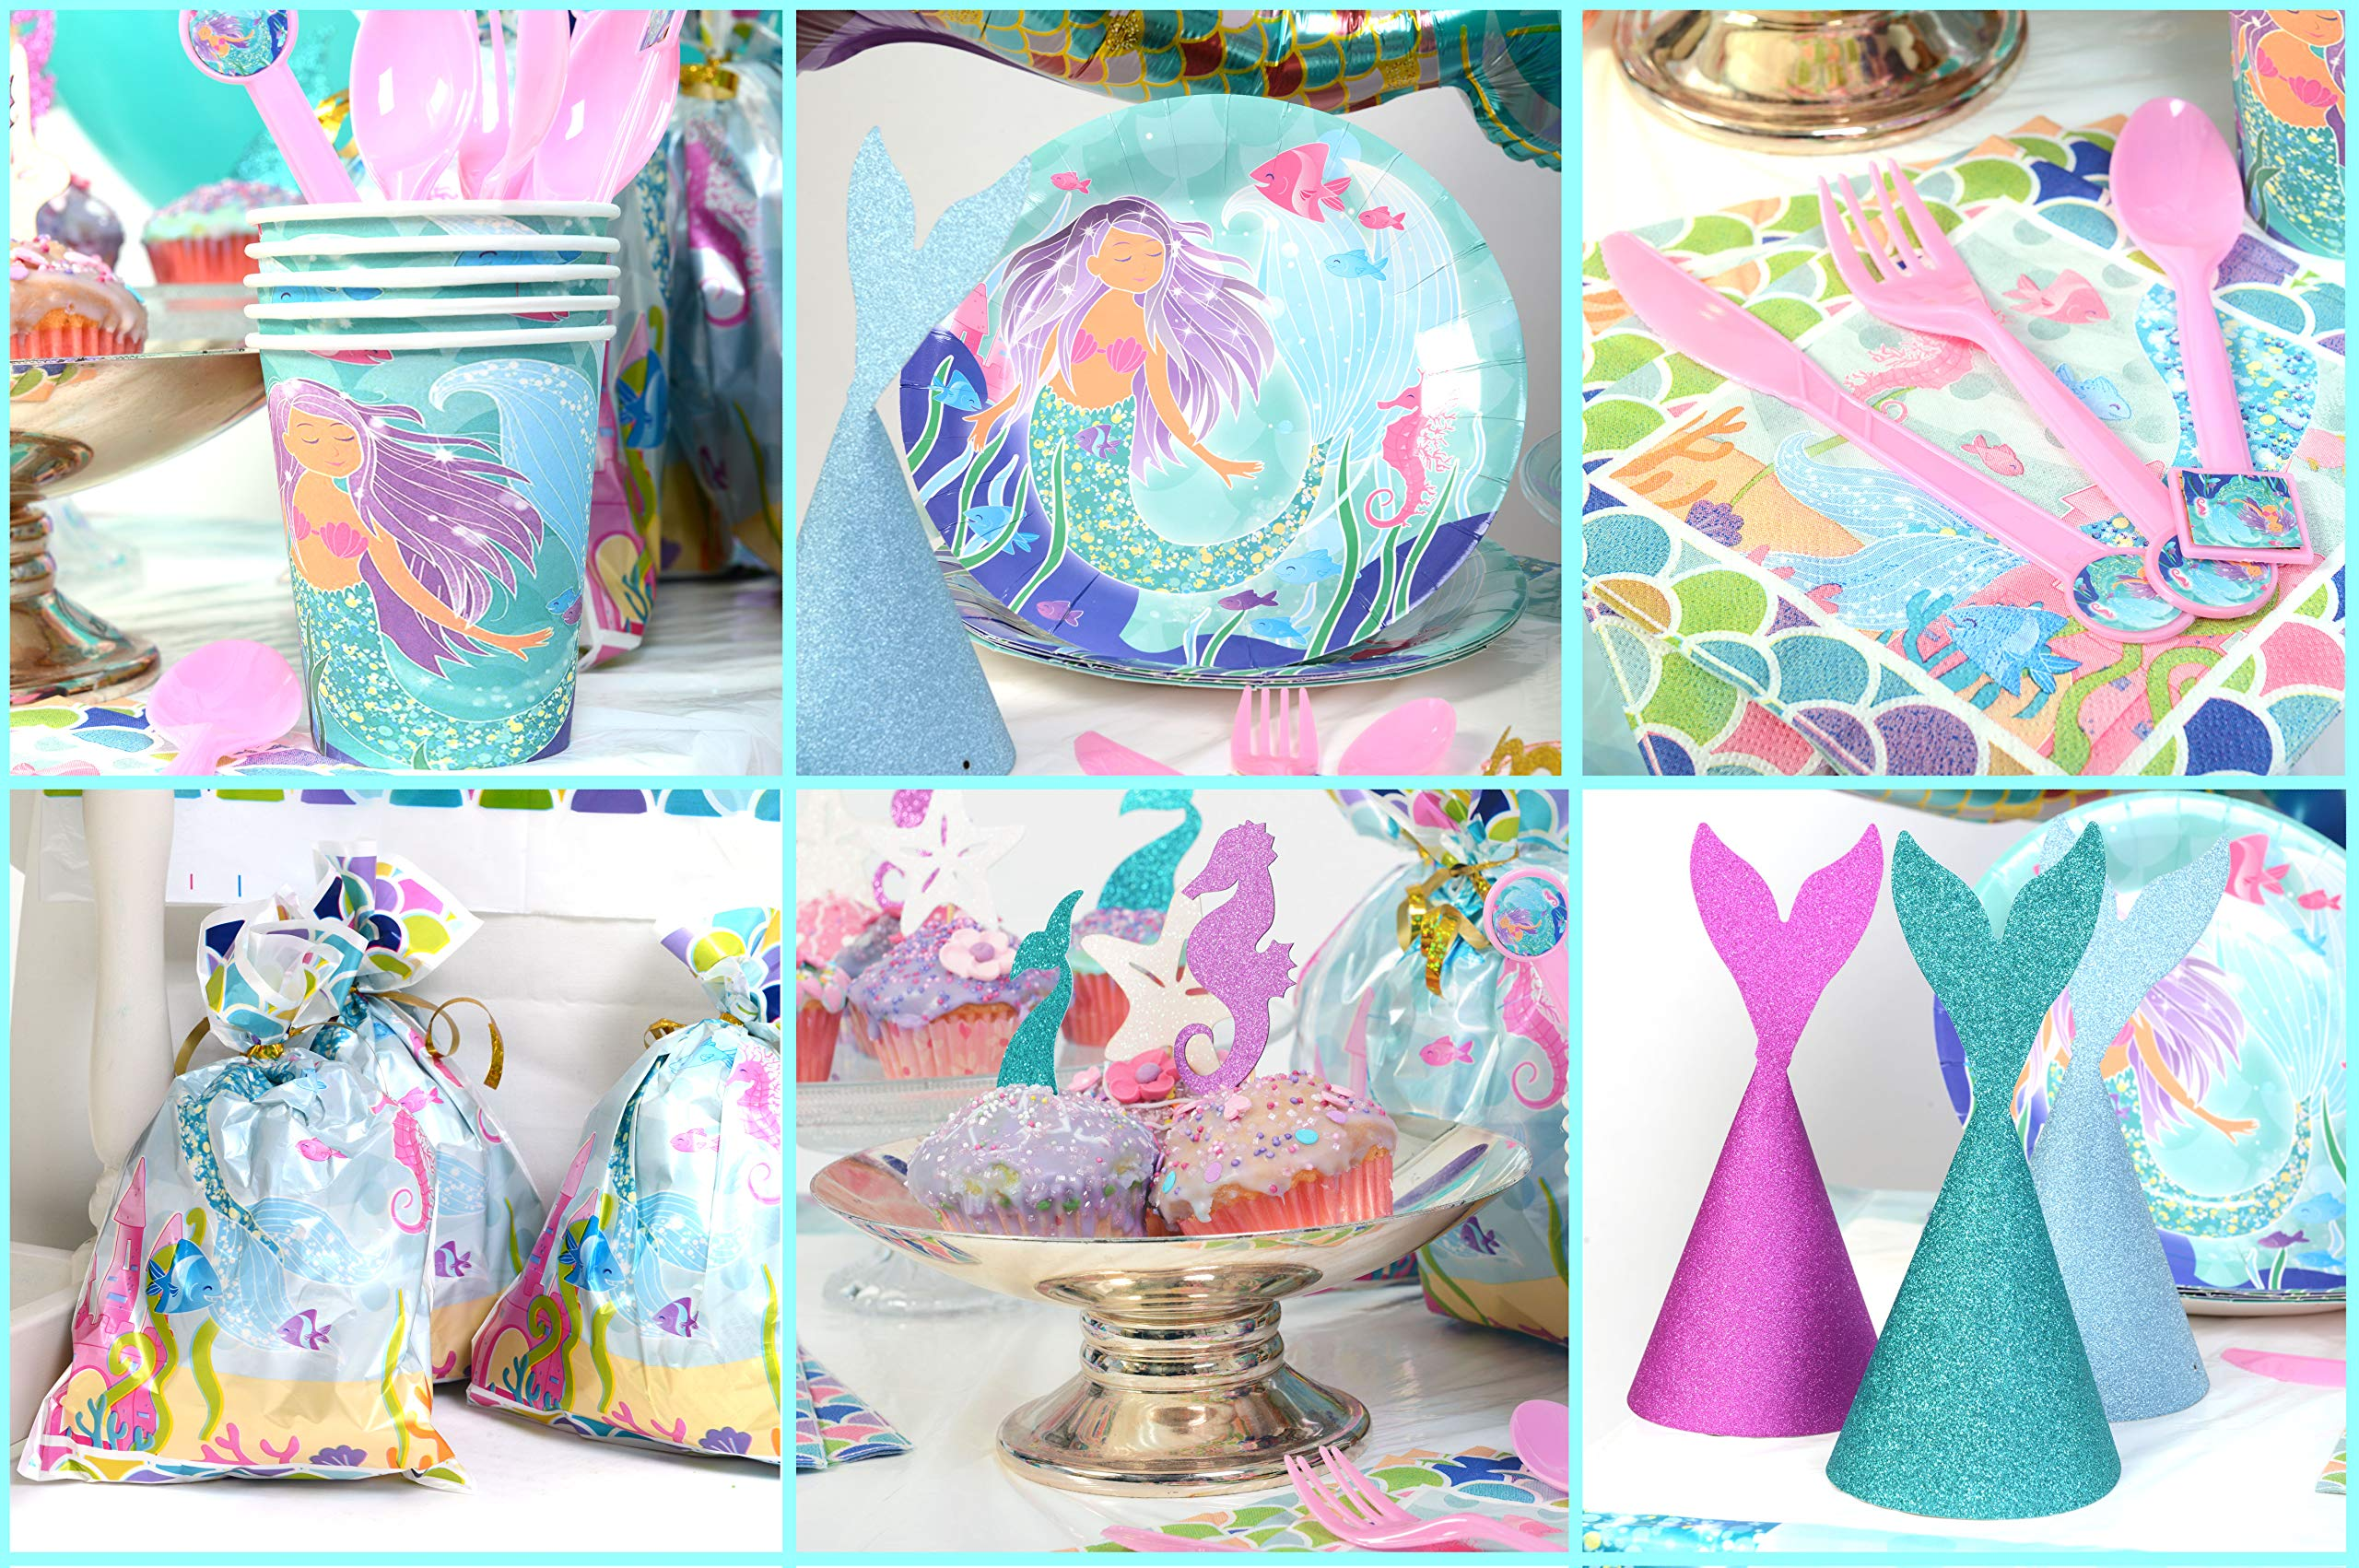 Mermaid Party Supplies - Complete Tableware and Decoration Deluxe Set - Plates, Cups, Utensils, Napkins, Table Cloth, Balloons, Happy Birthday Banner, Cupcake Topper, Favor Bags, Mermaid Hats & Crown by Periwinkle Berries (Image #4)